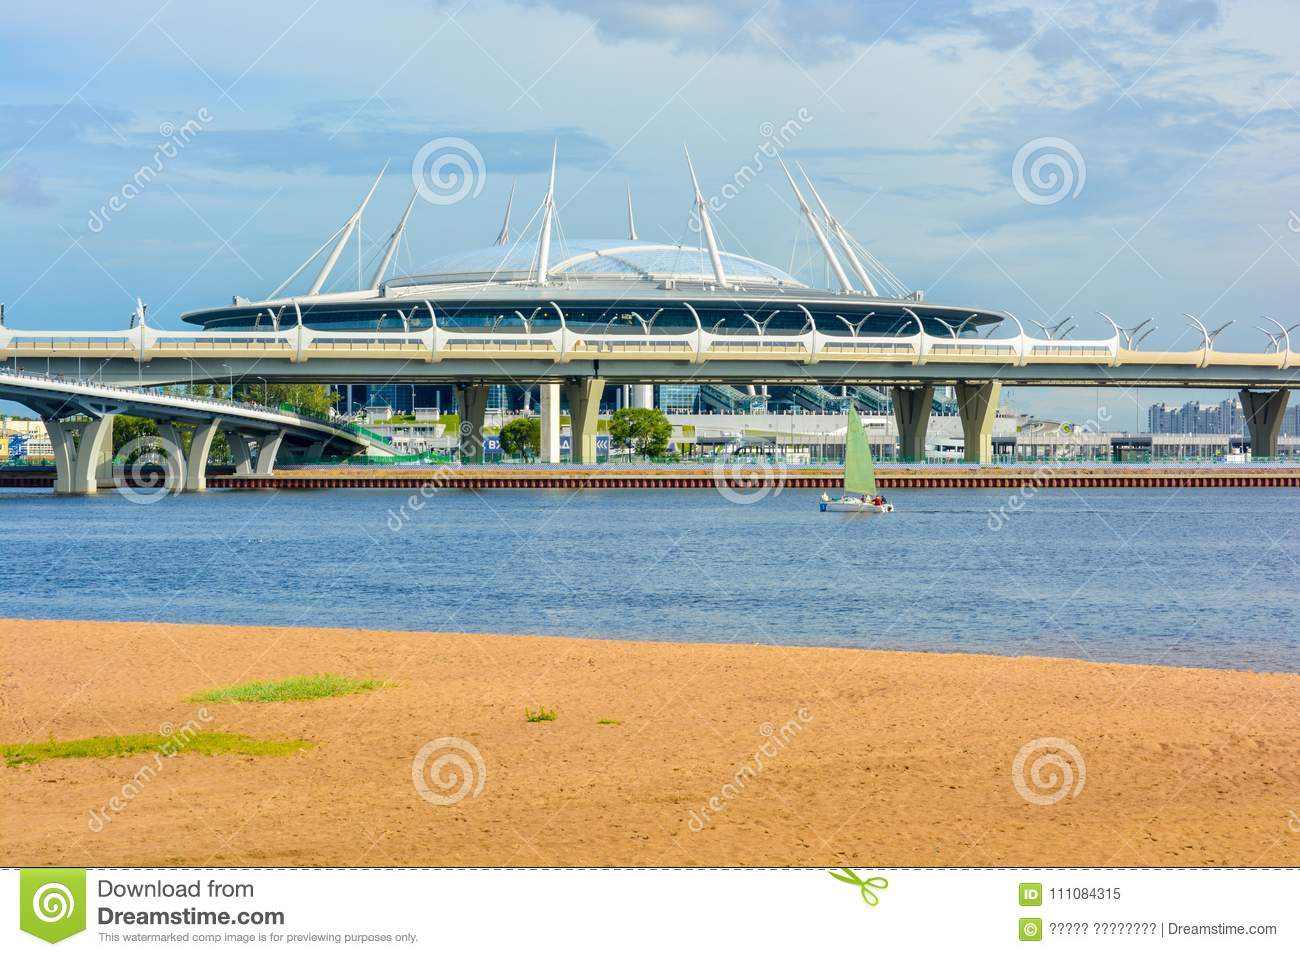 Saint Petersburg stadium Zenith football stadium on the Krestovsky Island behind the bridge and the gulf.